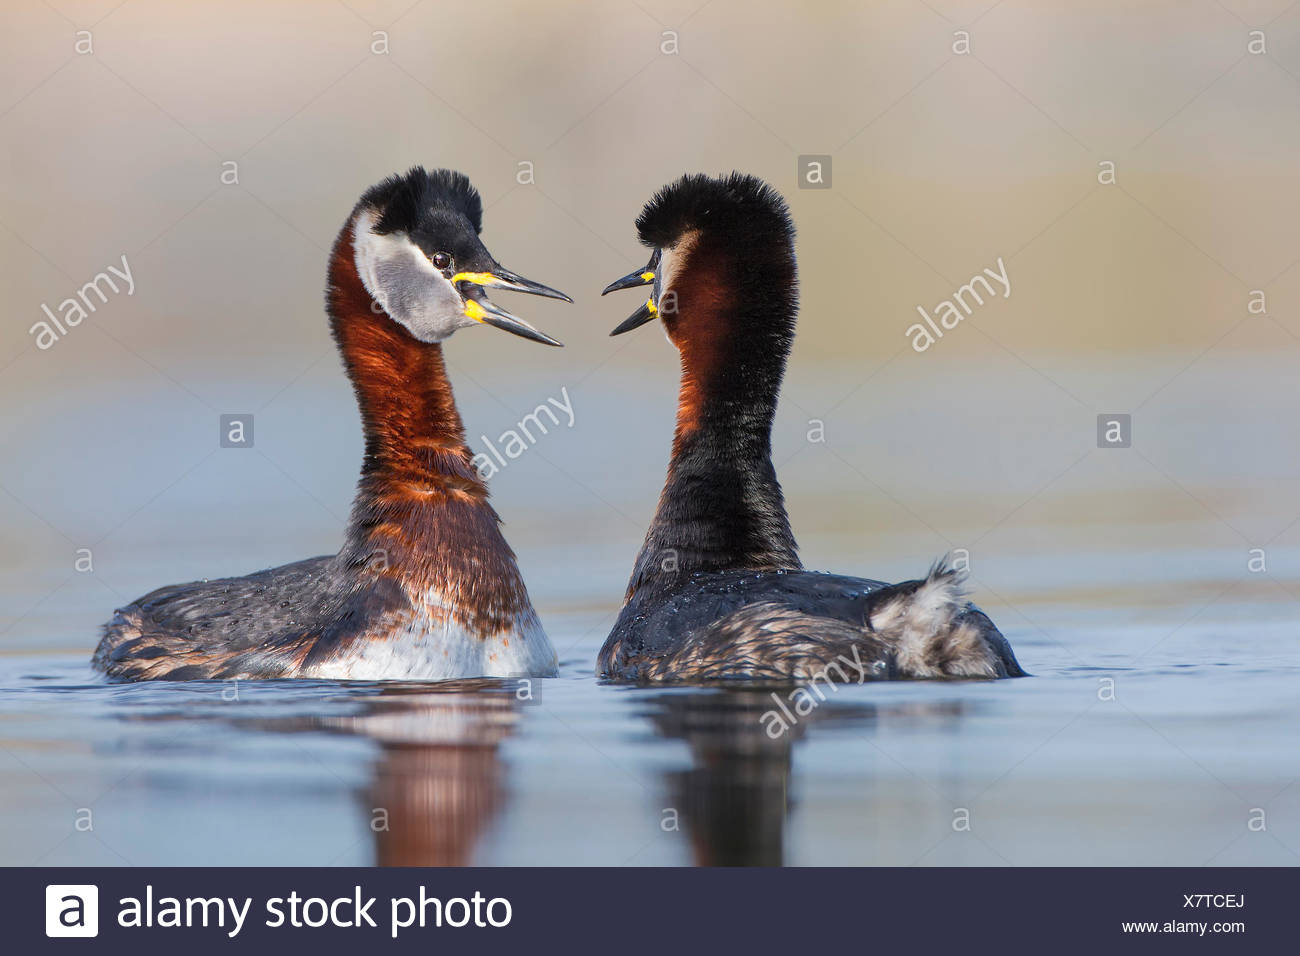 Red-necked Grebes (Podiceps grisegena), male and female, pair, courtship, breeding plumage, Mittelelbe biosphere reserve - Stock Image